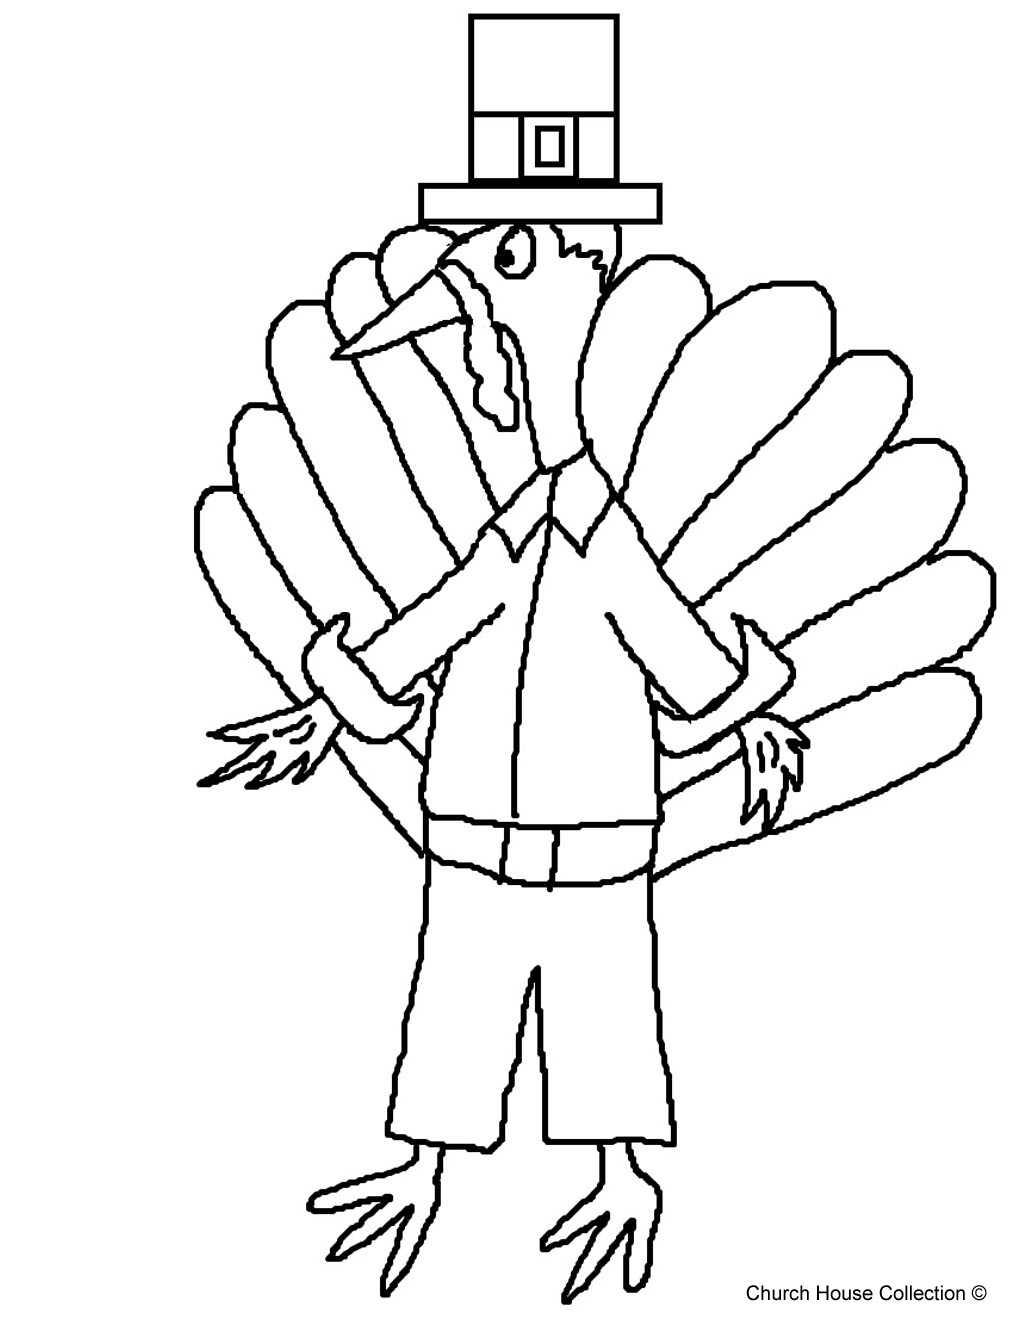 Church house collection blog free printable pilgrim for Turkey template for bulletin board